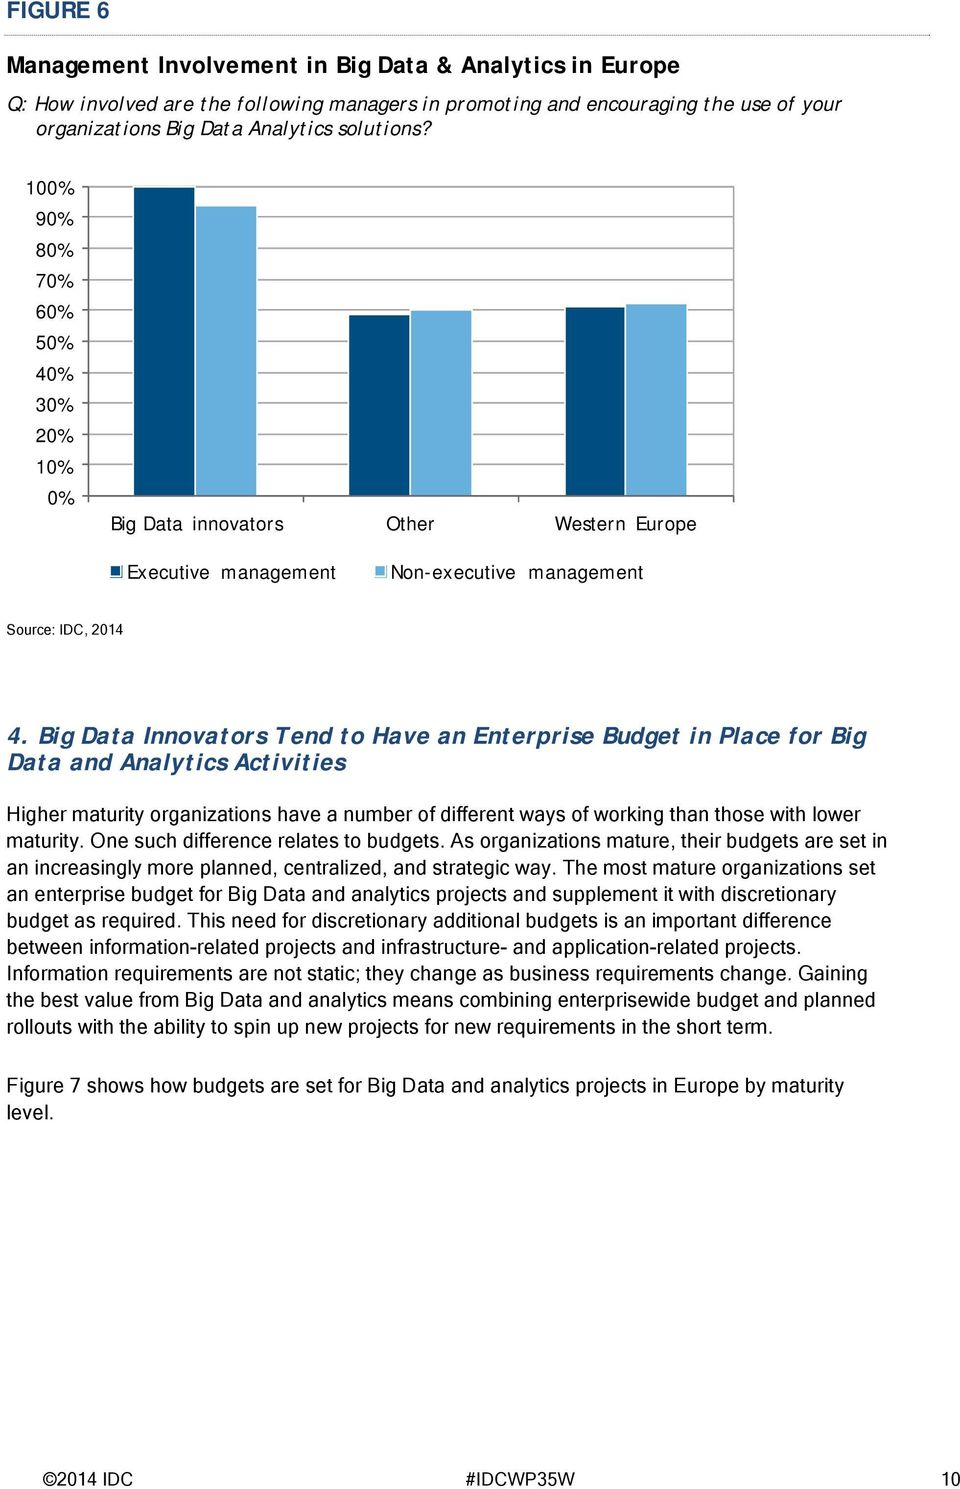 Big Data Innovators Tend to Have an Enterprise Budget in Place for Big Data and Analytics Activities Higher maturity organizations have a number of different ways of working than those with lower